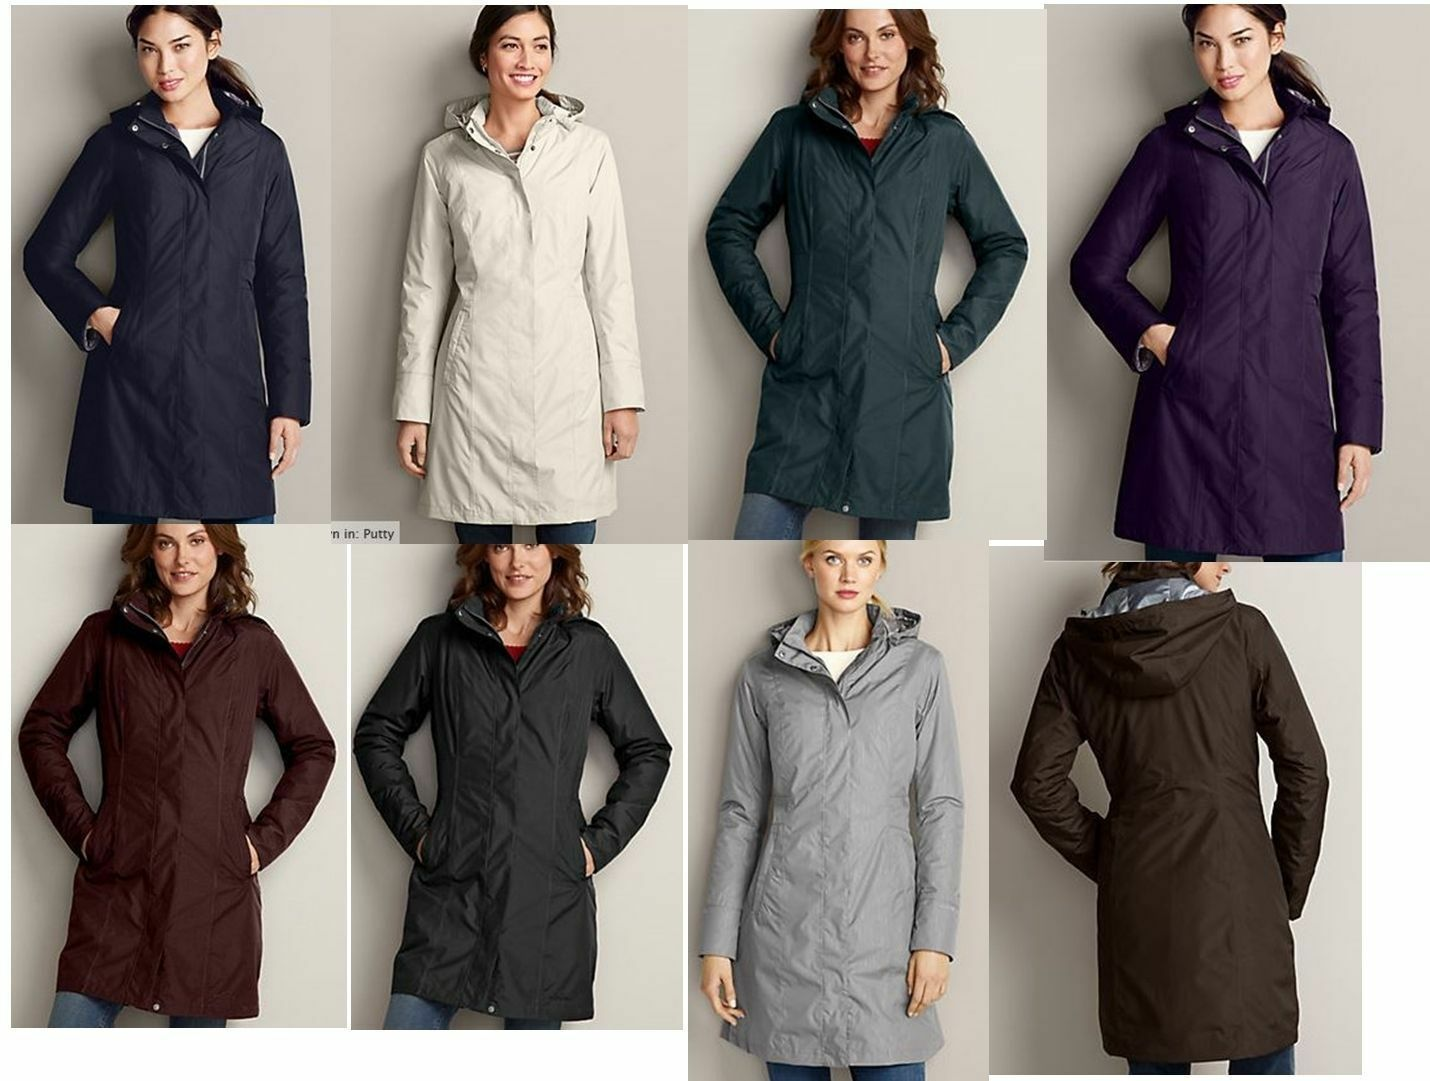 NWT Eddie Bauer Womens Weatheredge Girl On The Go Insulated Trench Coat 4 colors